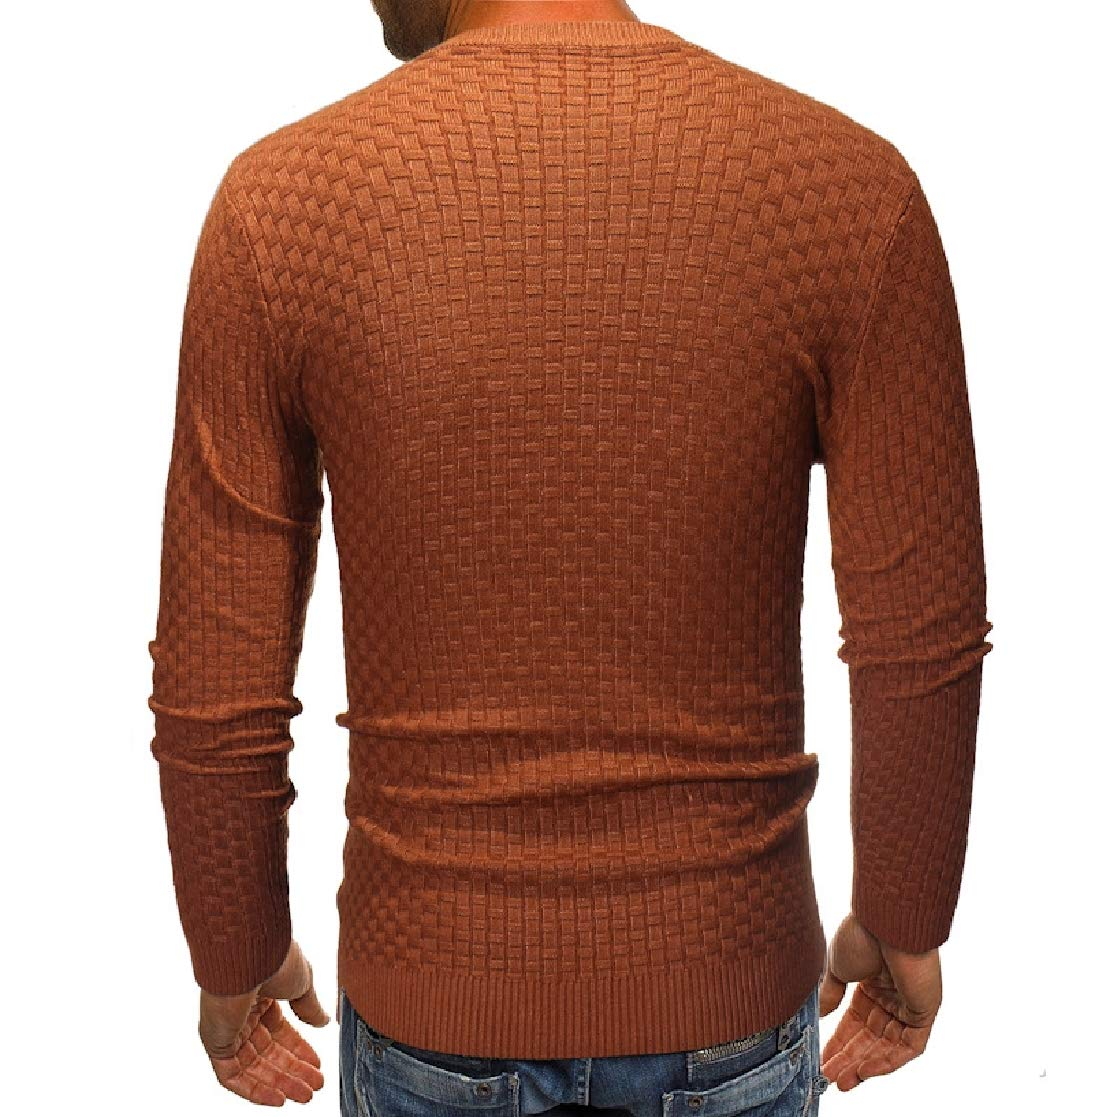 YUNY Mens Crew Neck Solid Colored Knit Chic Soft Autumn Winter Pullover Sweaters Camel S